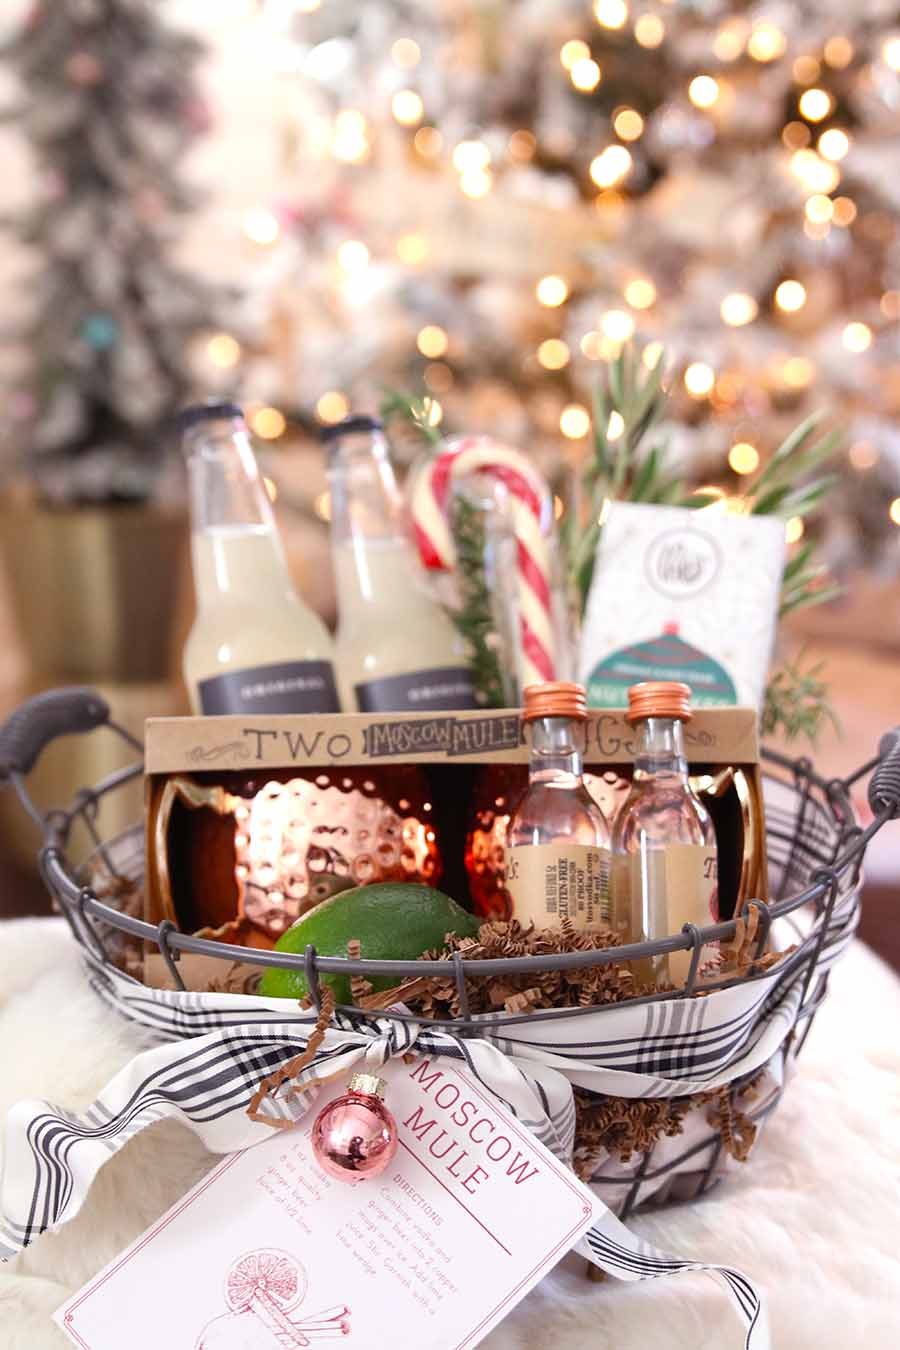 moscow mule gift basket diy hostess gift - modern glam